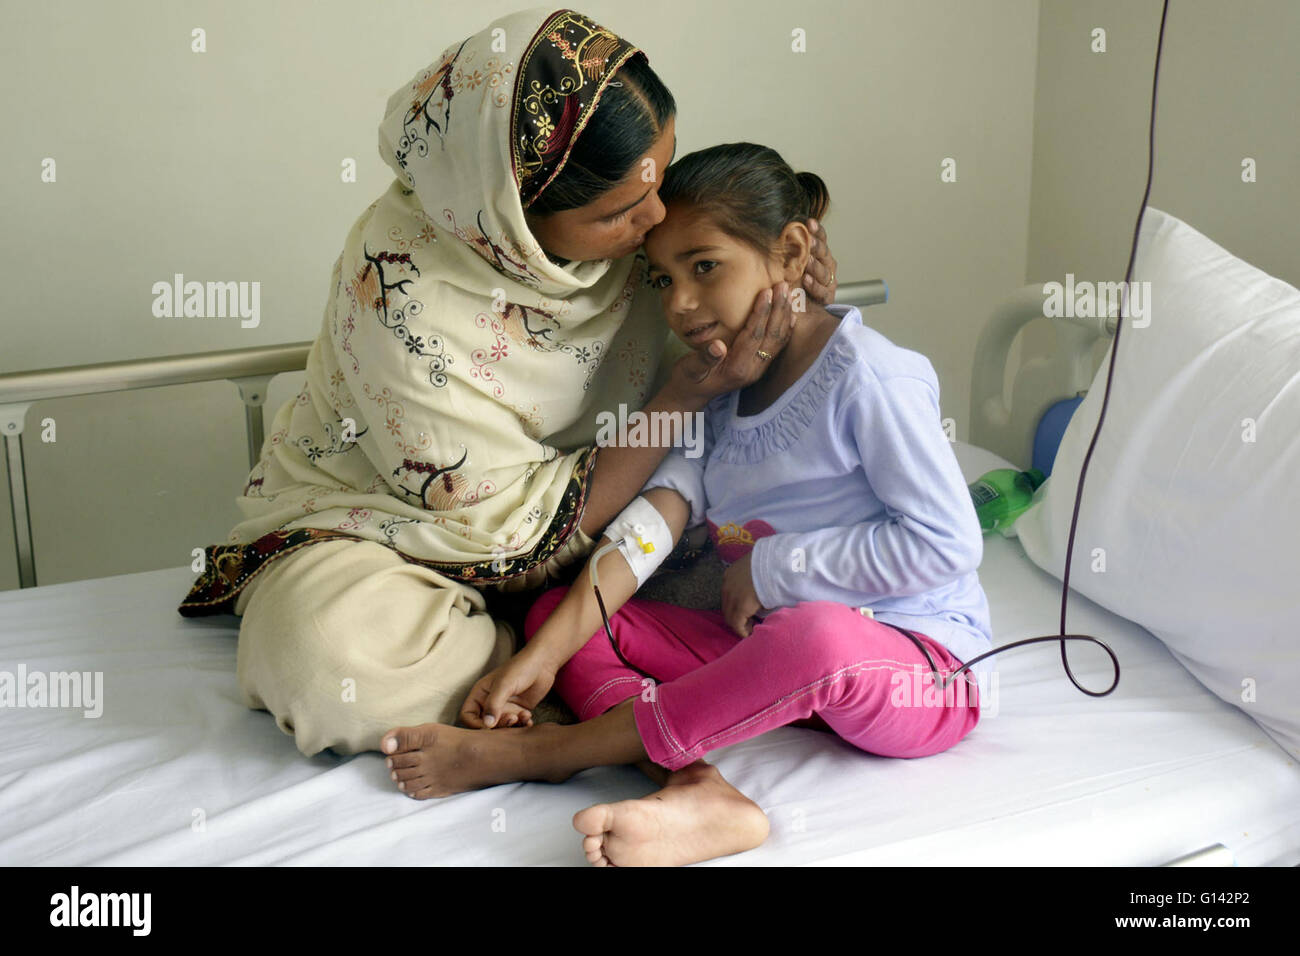 Lahore, Pakistan. 8th May, 2016. A mother takes care of her daughter suffering from thalassemia during treatment - Stock Image